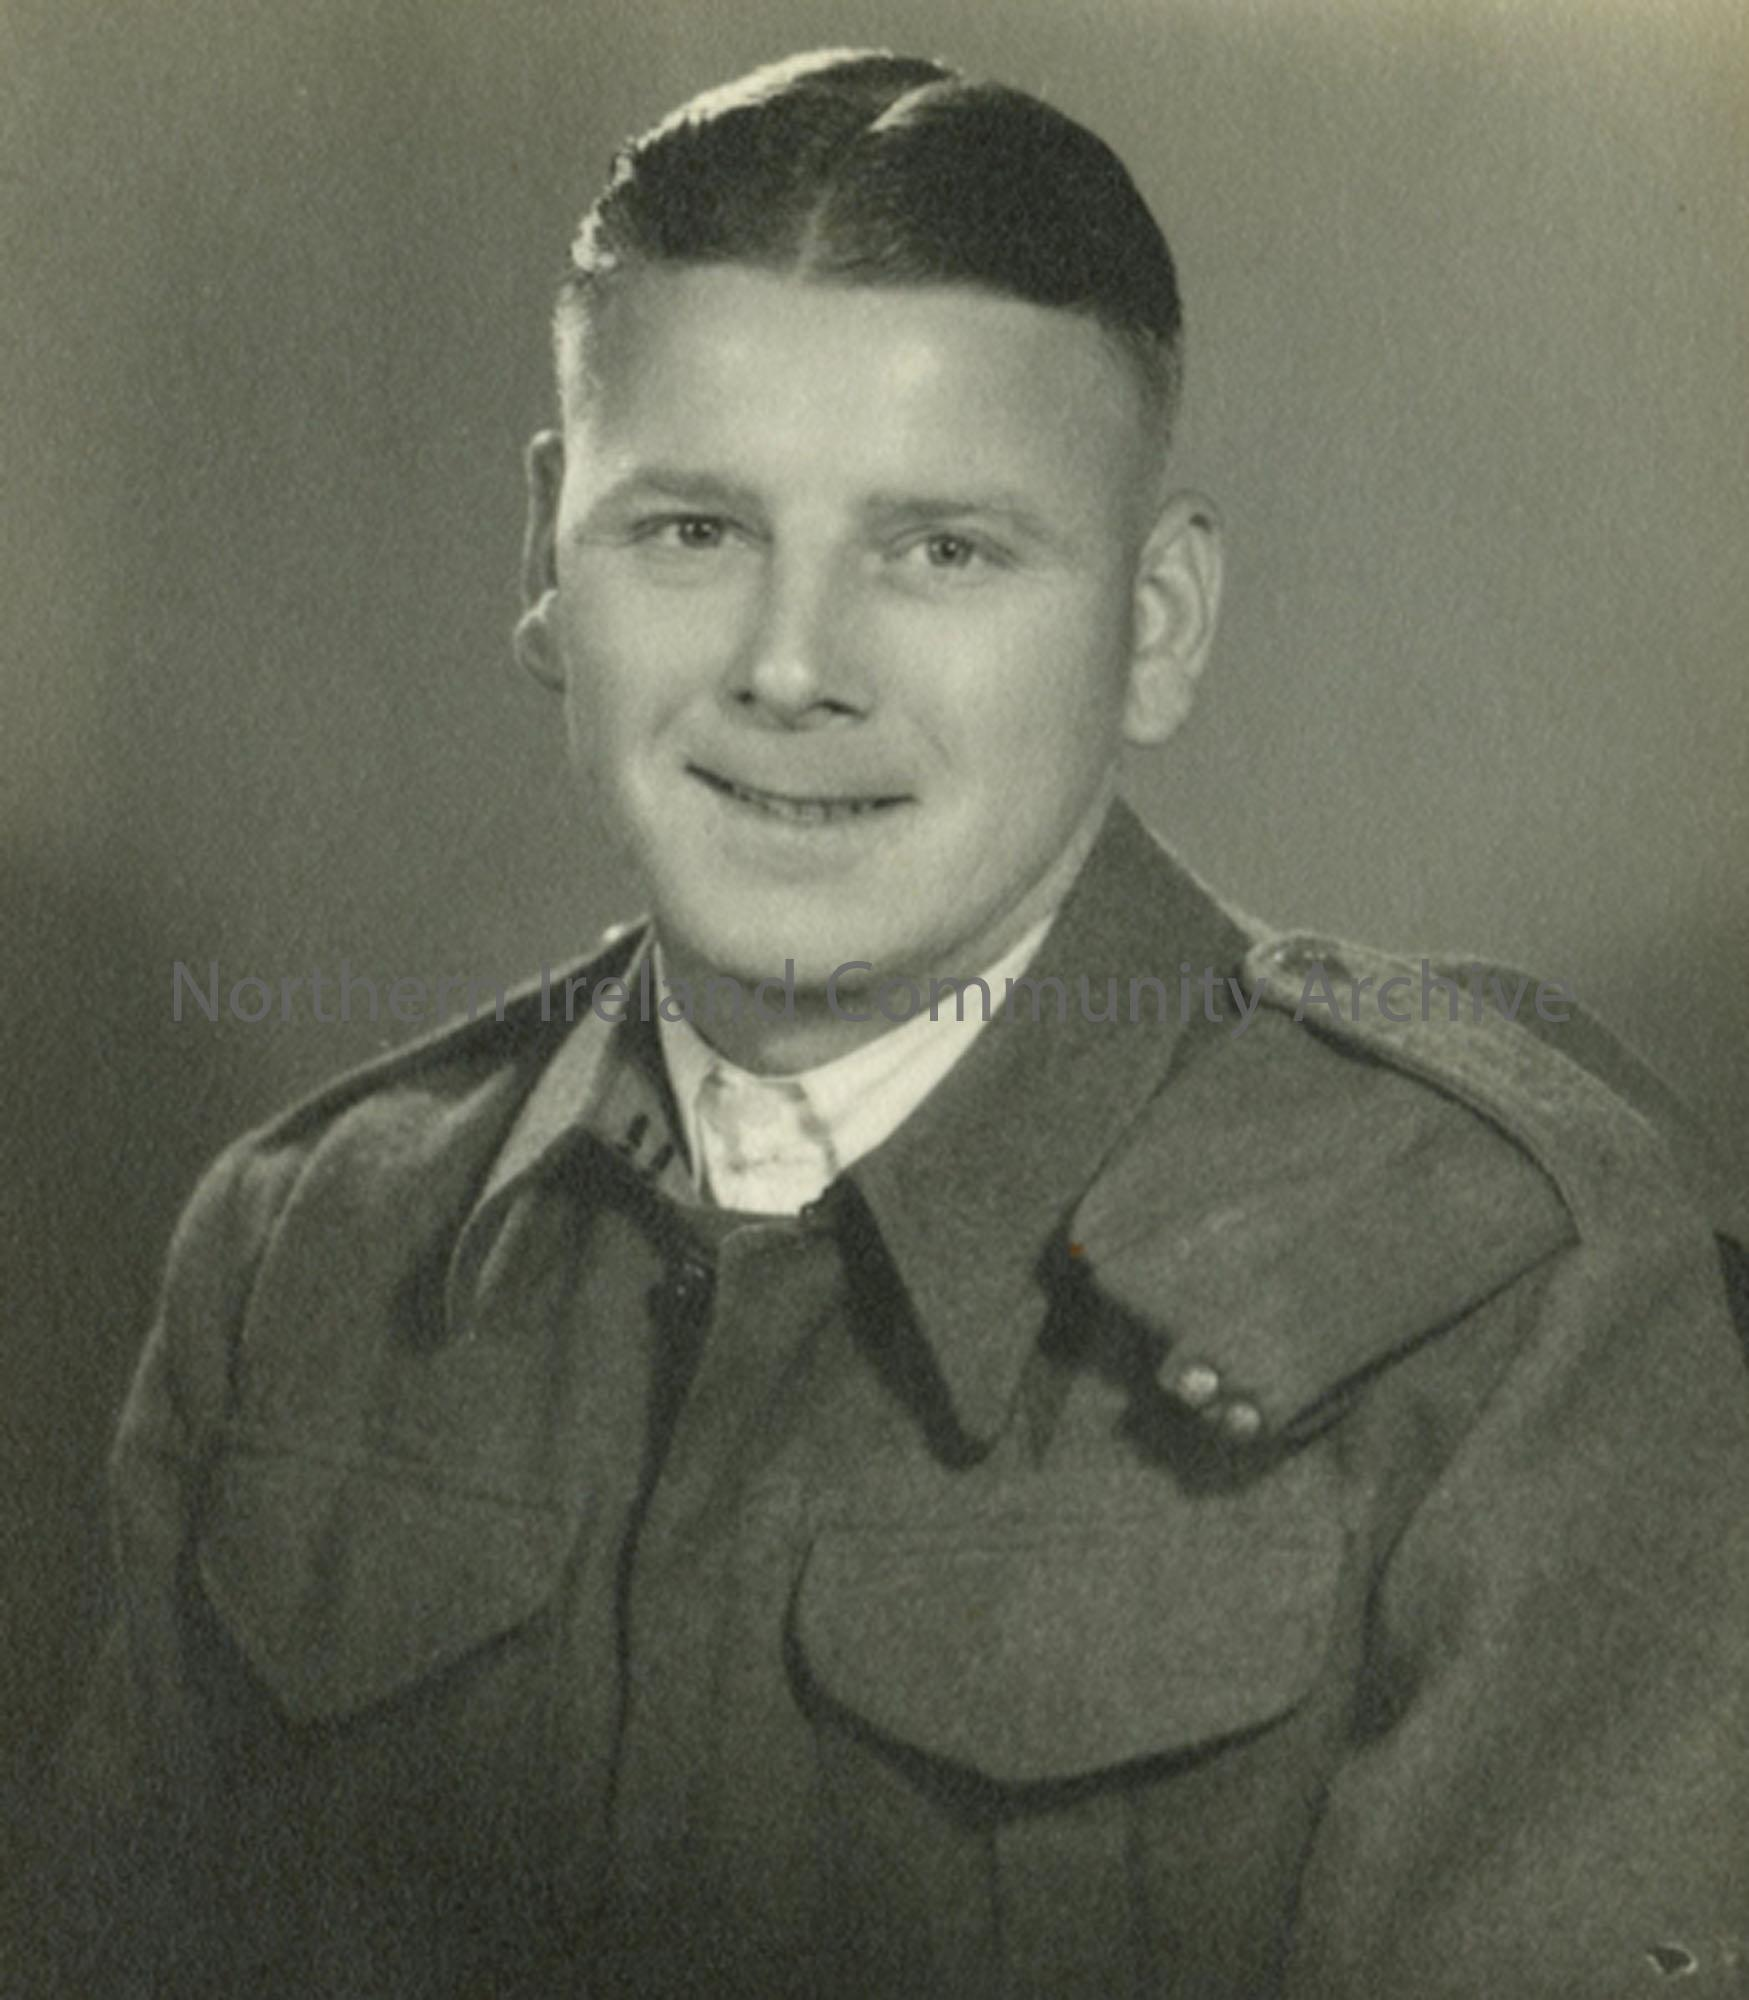 Photo of a soldier